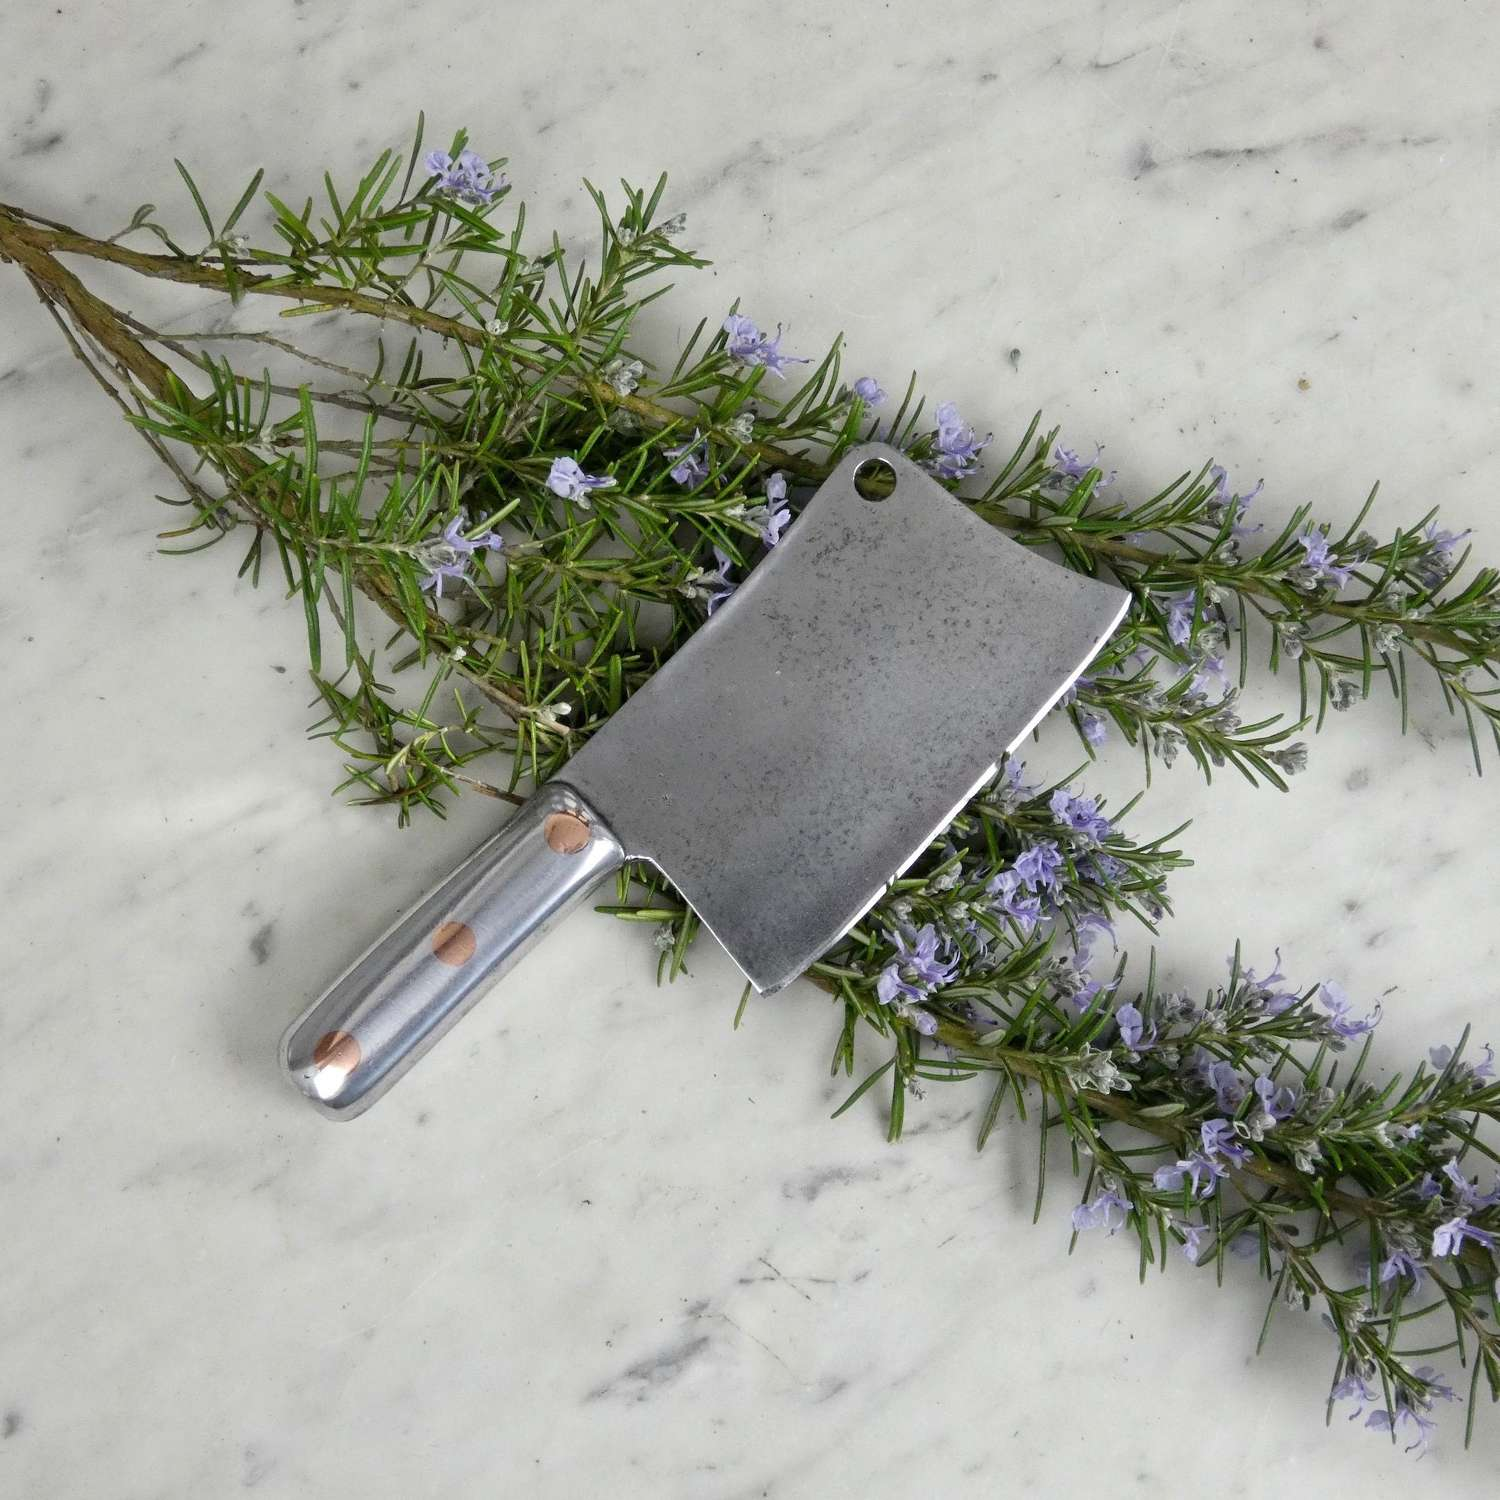 Small, steel meat cleaver